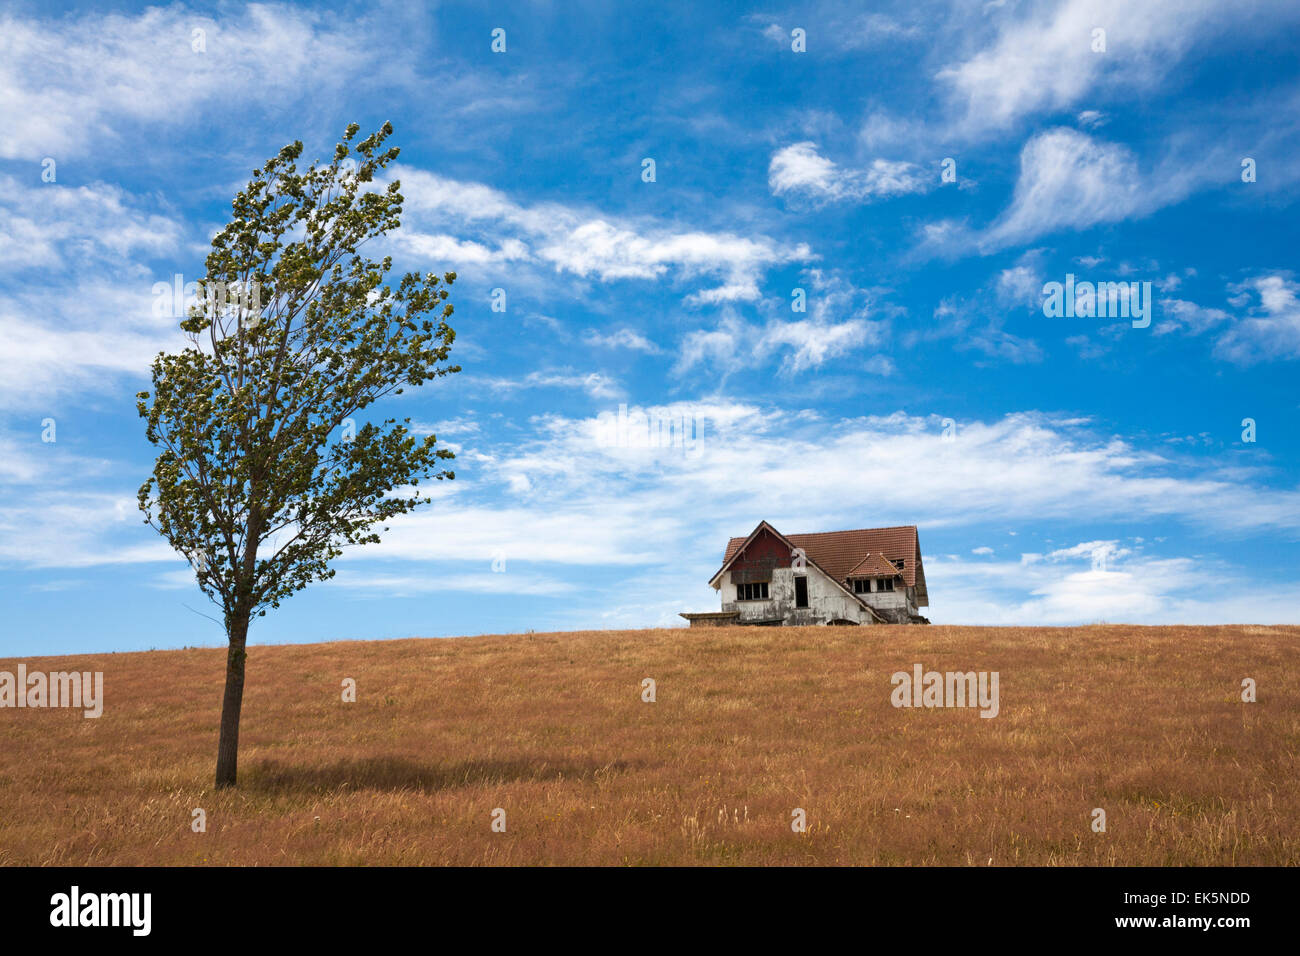 Tree And Remote Abandoned House On Top Of Hill In New Zealand Stock Photo Alamy